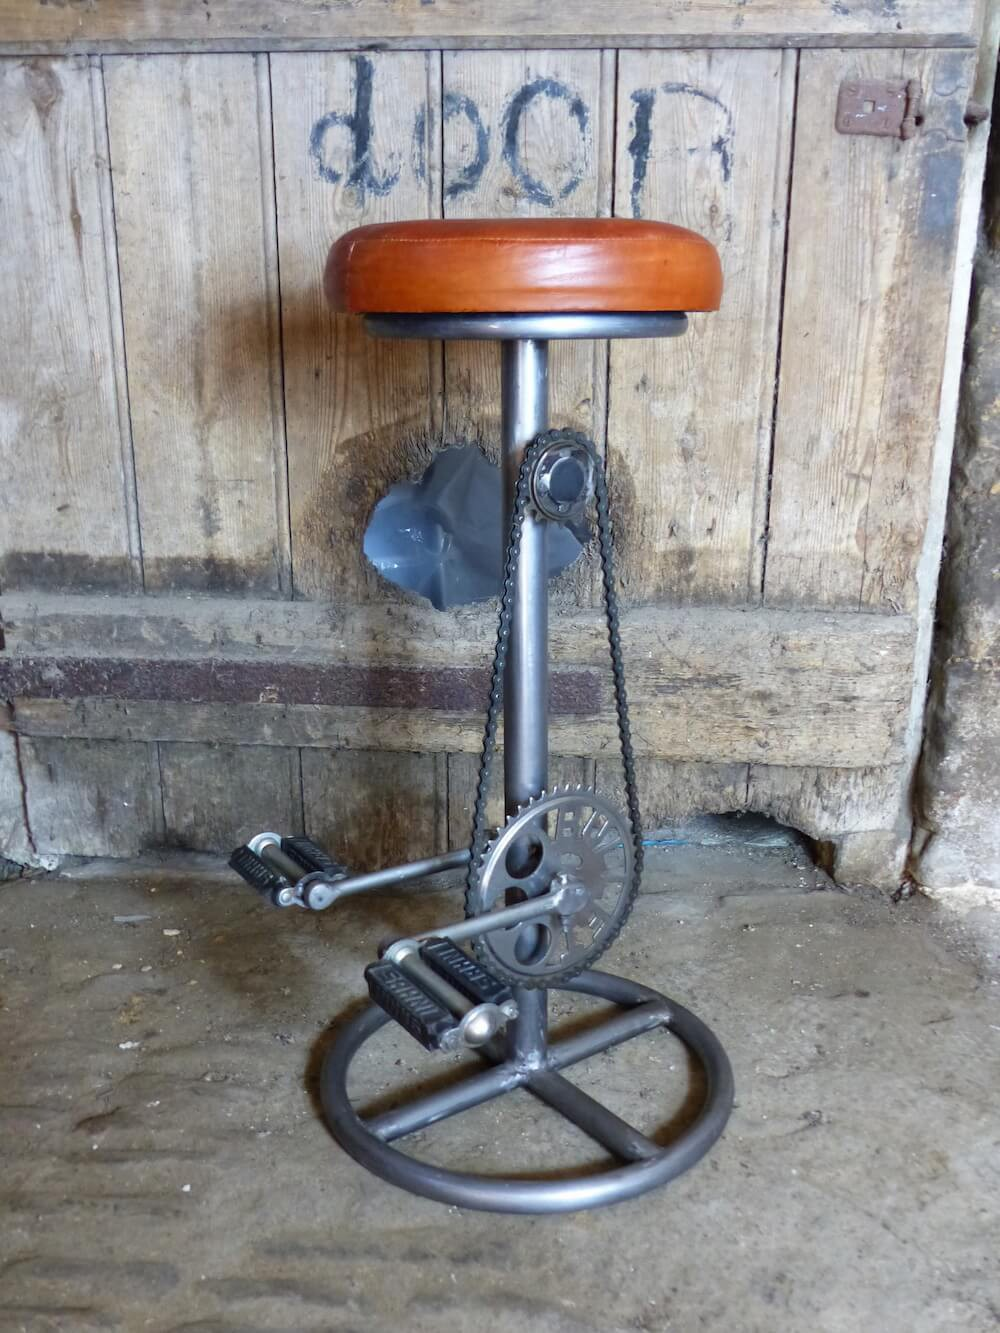 Bike seat pedal bar stools tan leather bar stools with bike pedals